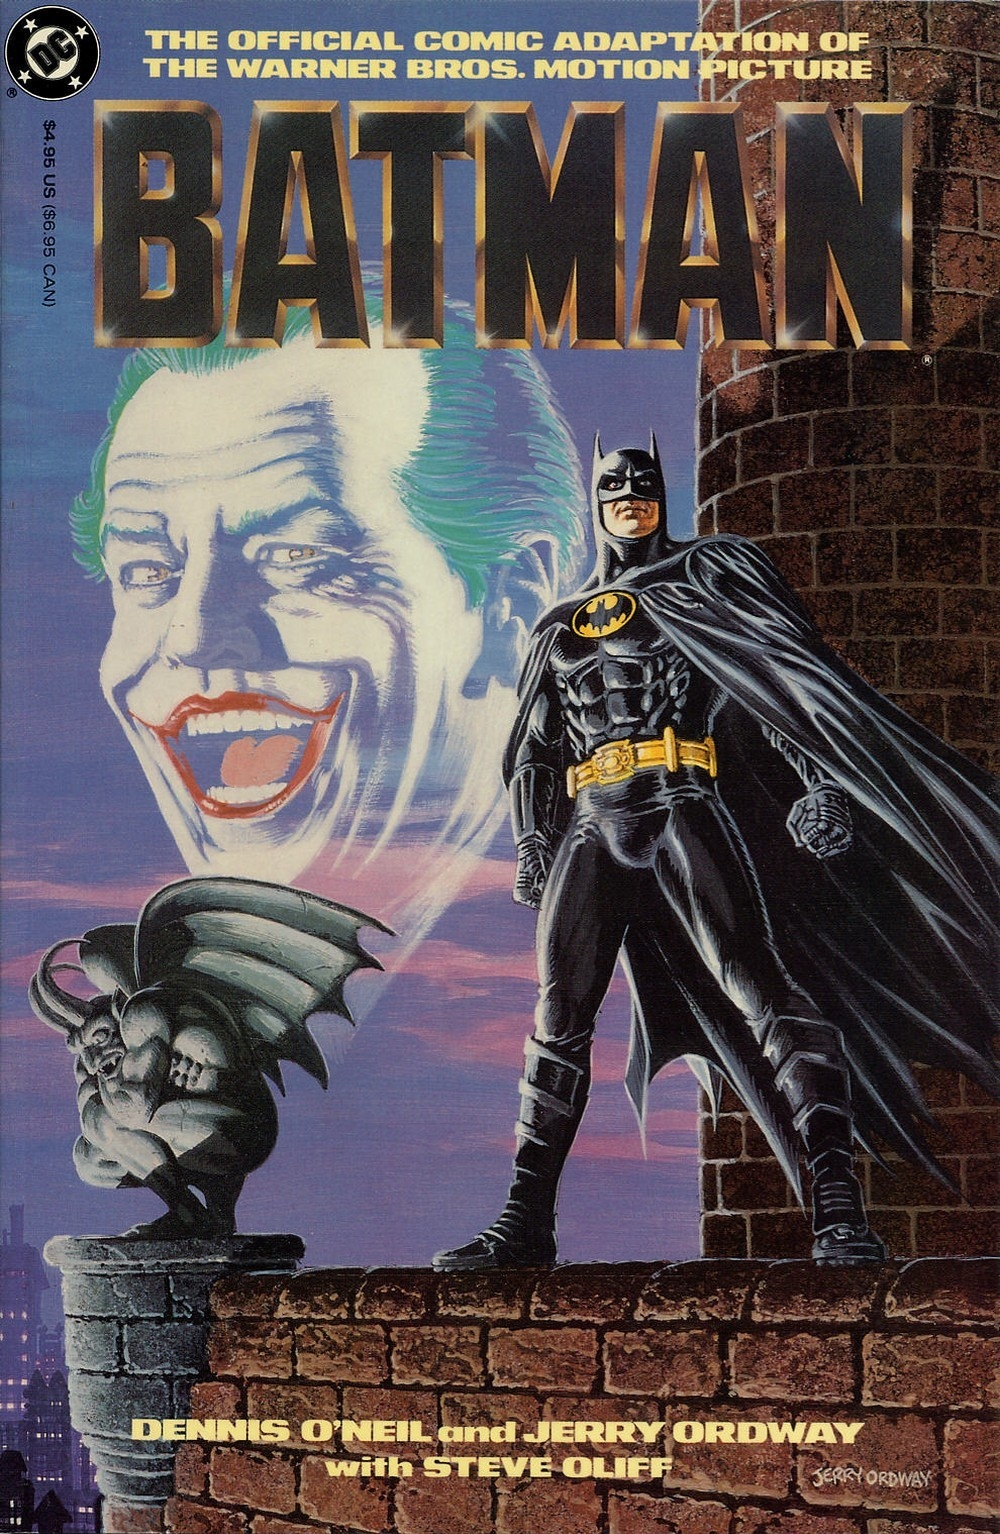 BatmanMovie1989ComicAdaptation